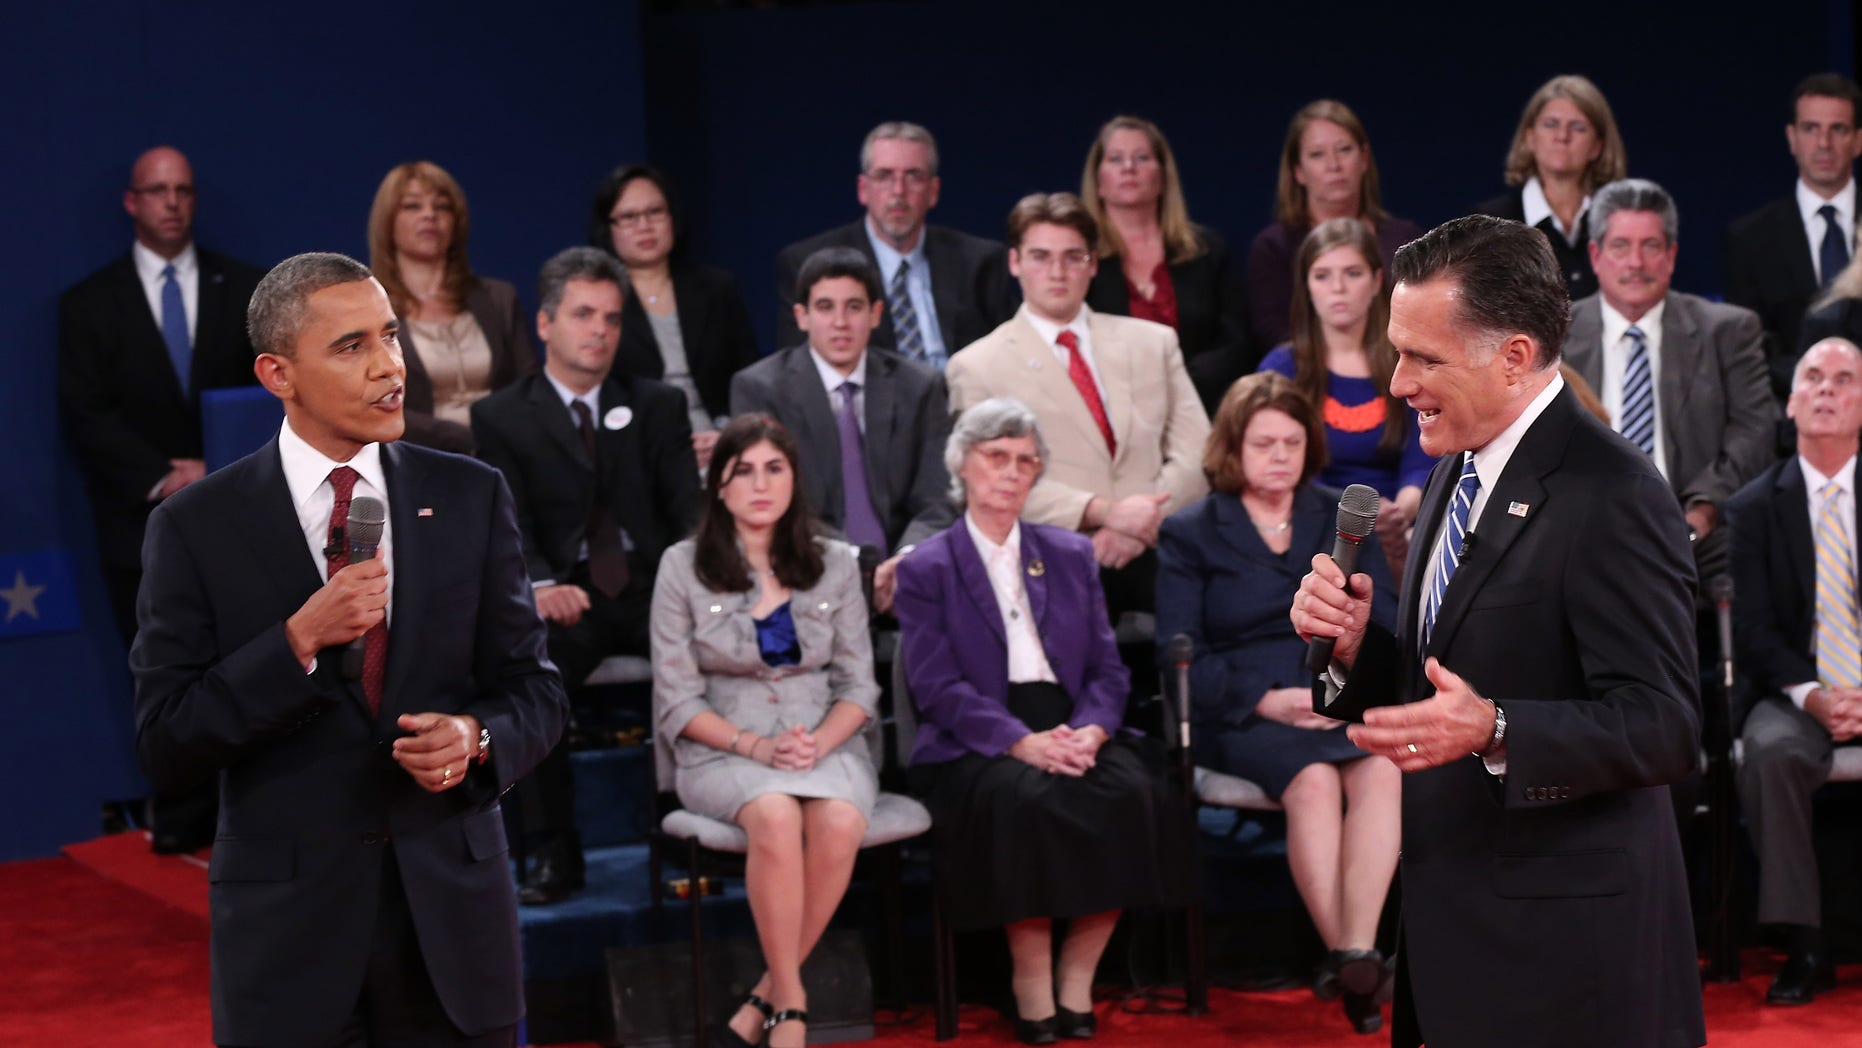 HEMPSTEAD, NY - OCTOBER 16: U.S. President Barack Obama (L) debates Republican presidential candidate Mitt Romney (R) during a town hall style meeting at Hofstra University October 16, 2012 in Hempstead, New York. During the second of three presidential debates, the candidates fielded questions from audience members on a wide variety of issues. (Photo by Win McNamee/Getty Images)